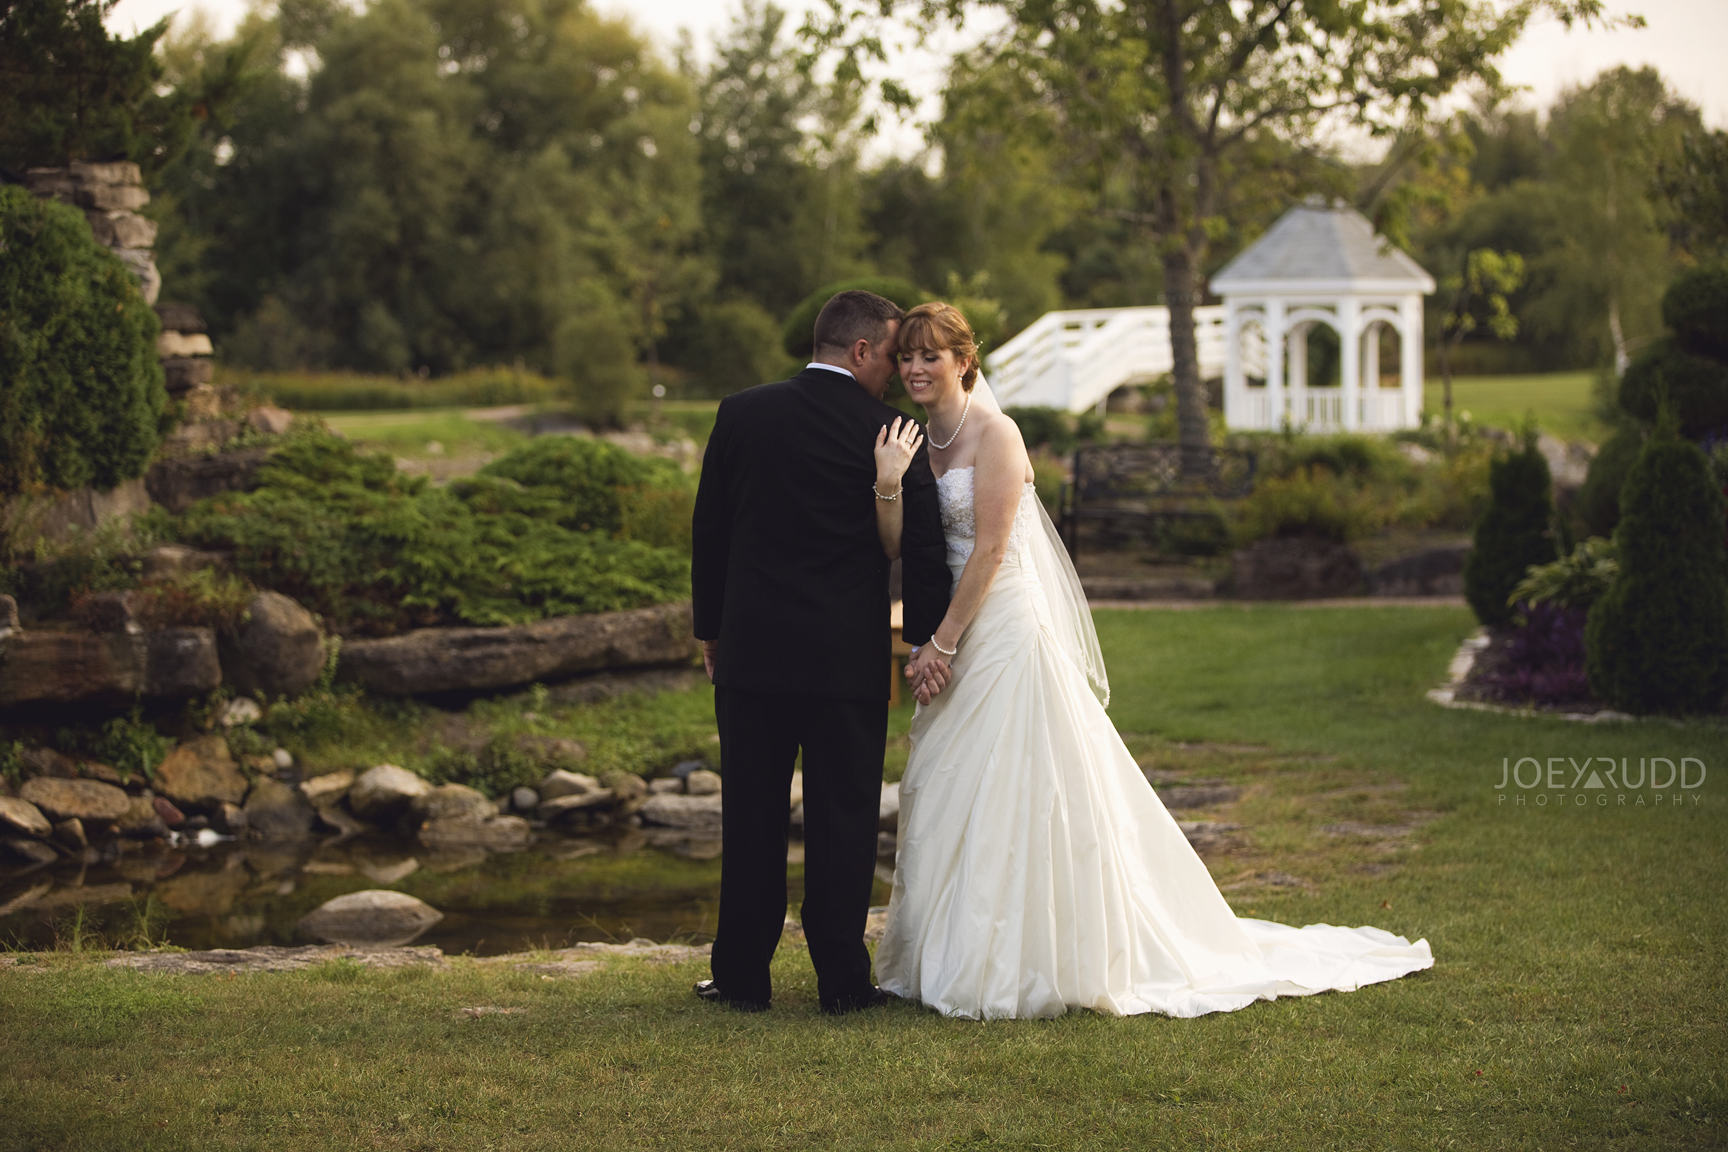 Ottawa Wedding at Orchard View by Joey Rudd Photography in Manotick